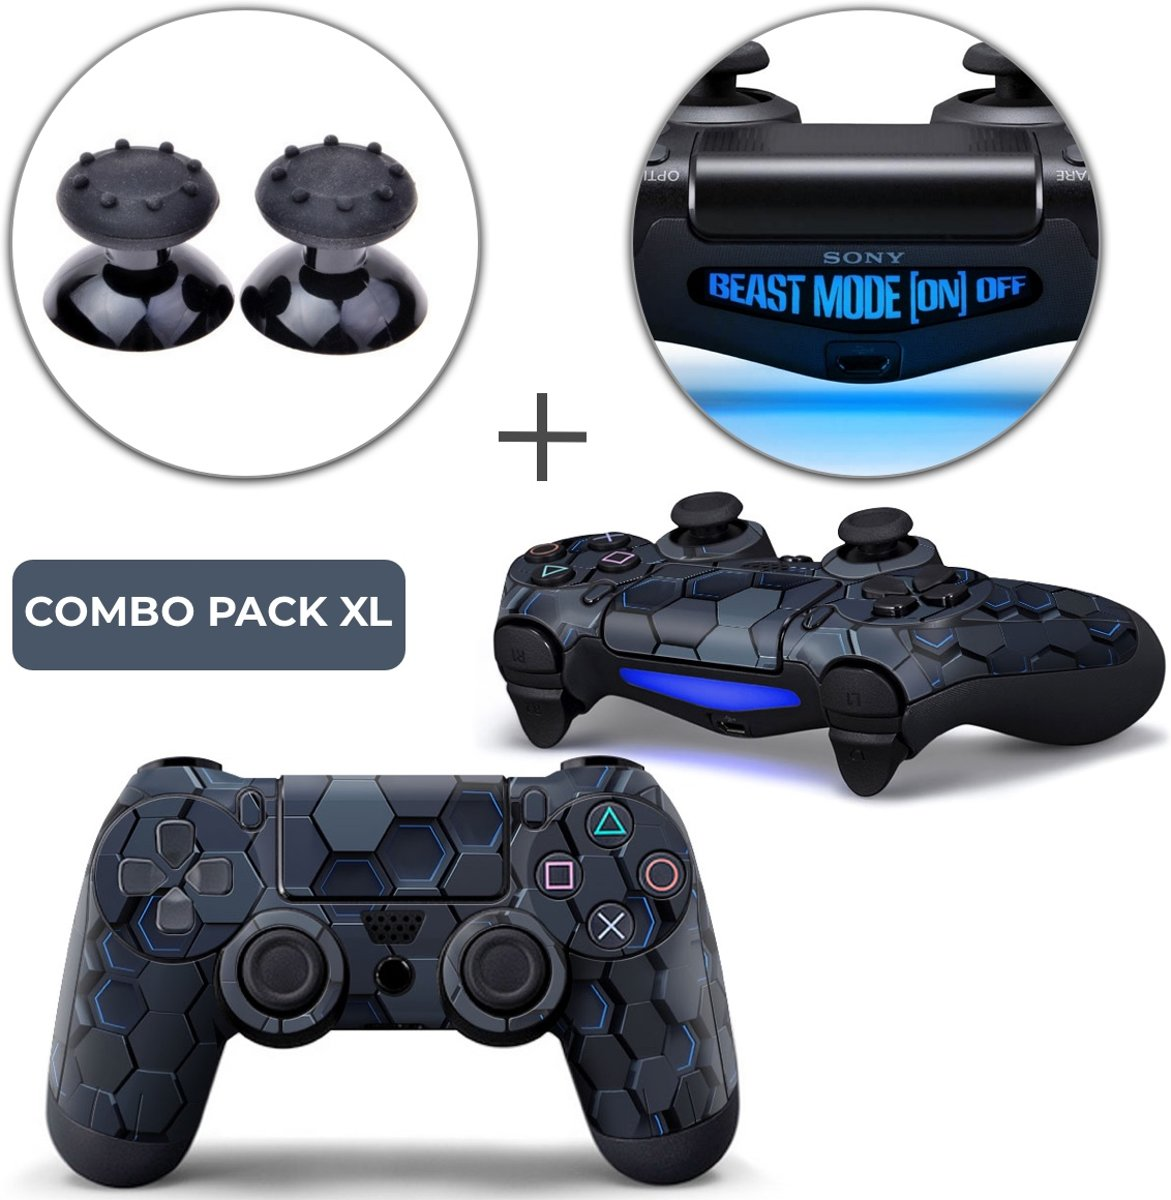 Hex 3D Combo Pack XL - PS4 Controller Skins PlayStation Stickers + Thumb Grips + Lightbar Skin Sticker